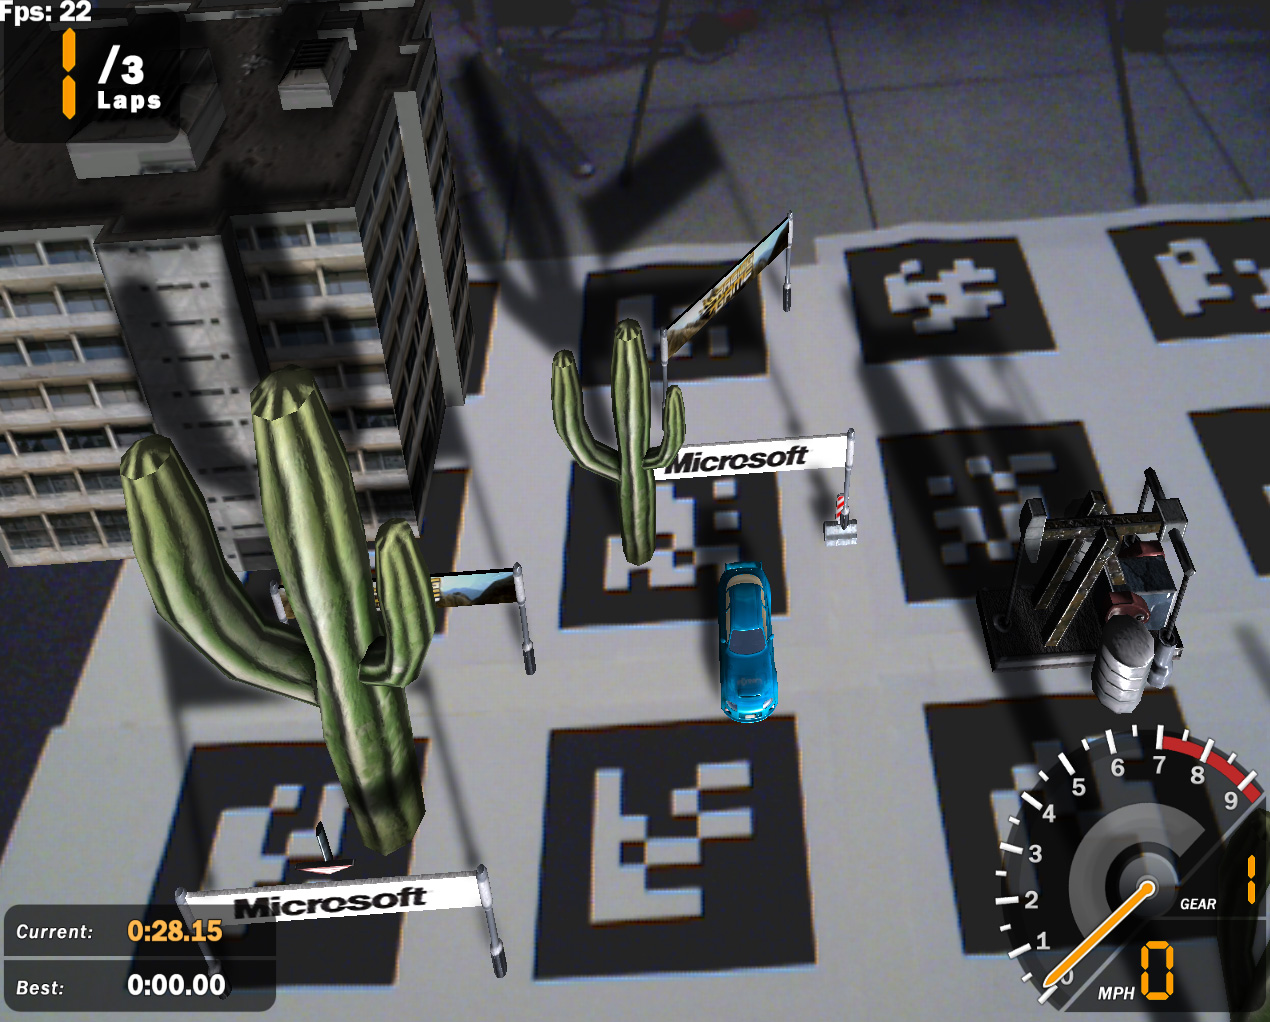 XNA AR Racing Game screenshot showing virtual objects on physical gameboard